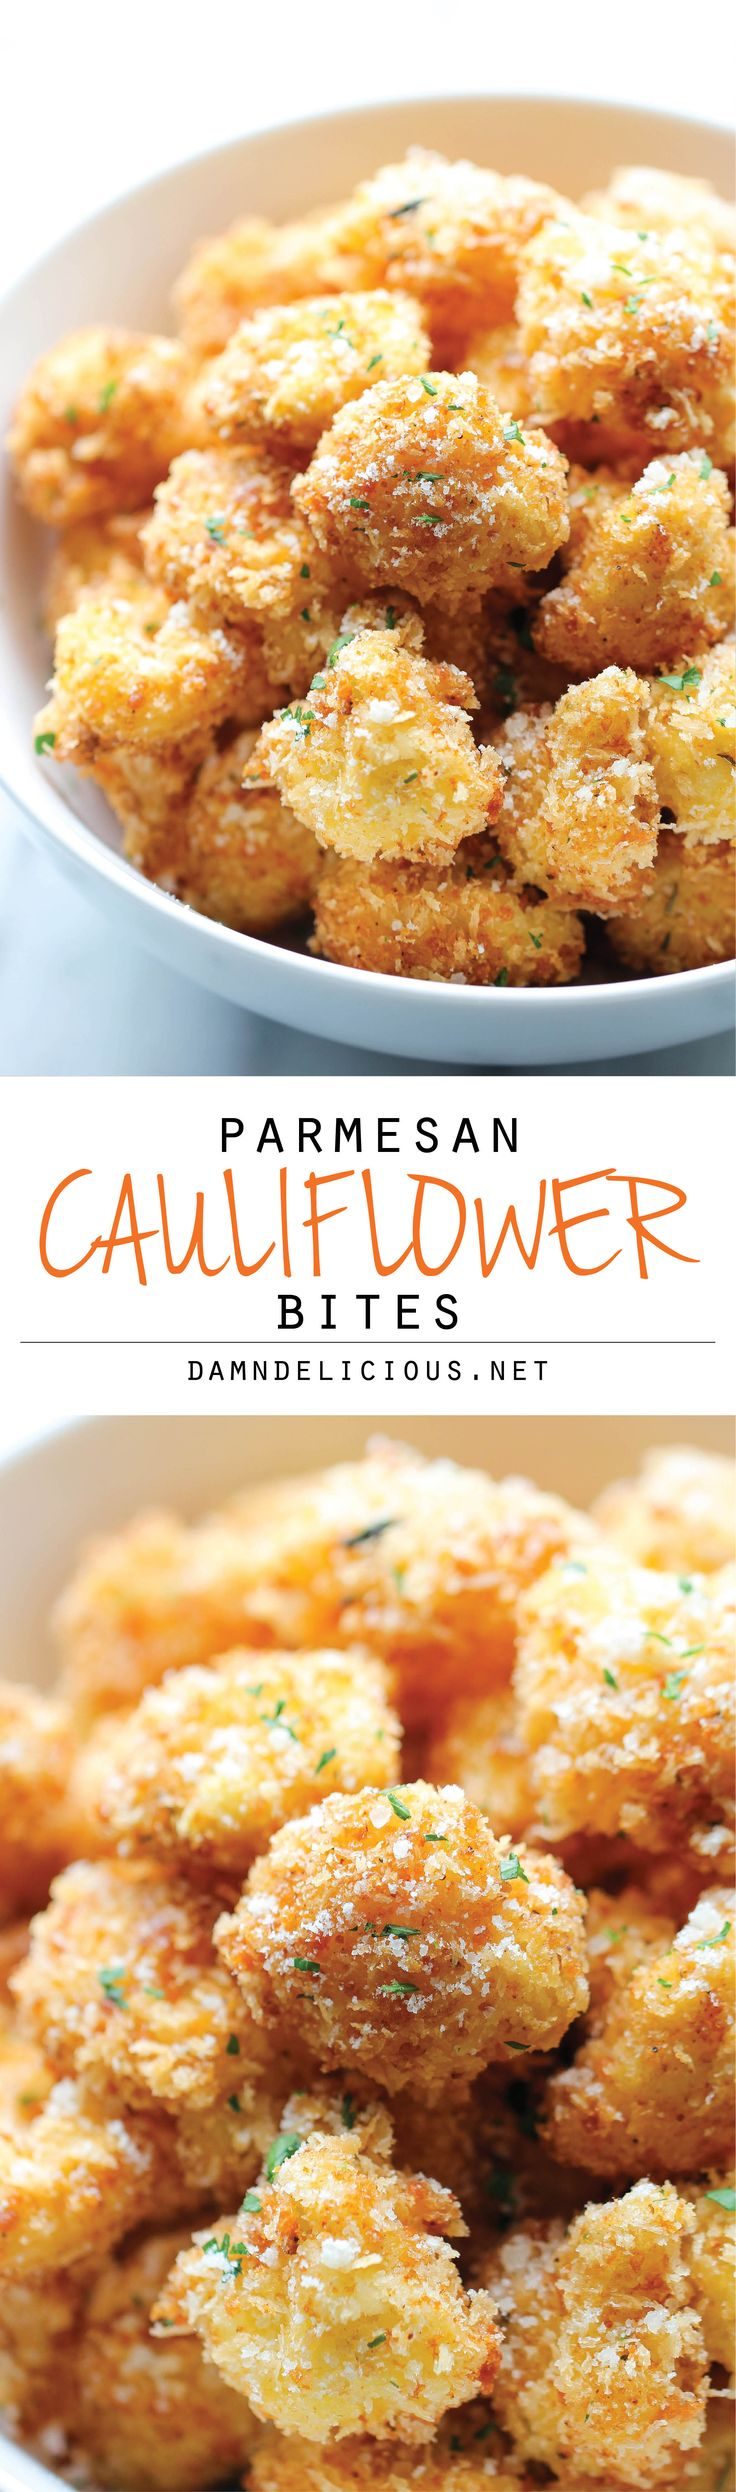 Parmesan Cauliflower Bites - Crisp, crunchy cauliflower bites that even the pickiest of eaters will love. – I Quit Sugar